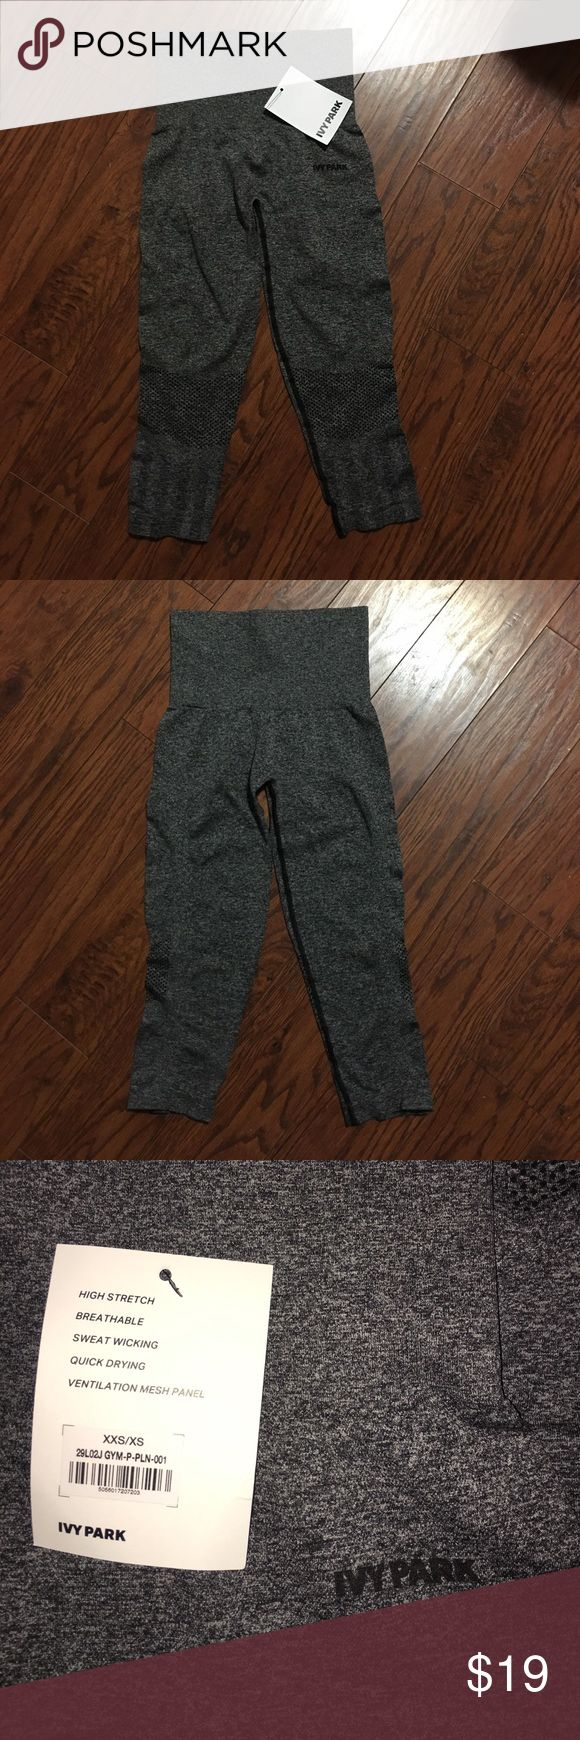 """Ivy Park Capri Leggings Brand new heather black Ivy Park Capri leggings. Size XXS/XS. They have a lot of stretch. Laying flat the waist measures 11"""" and inseam measures 18"""" Ivy Park Pants Leggings"""